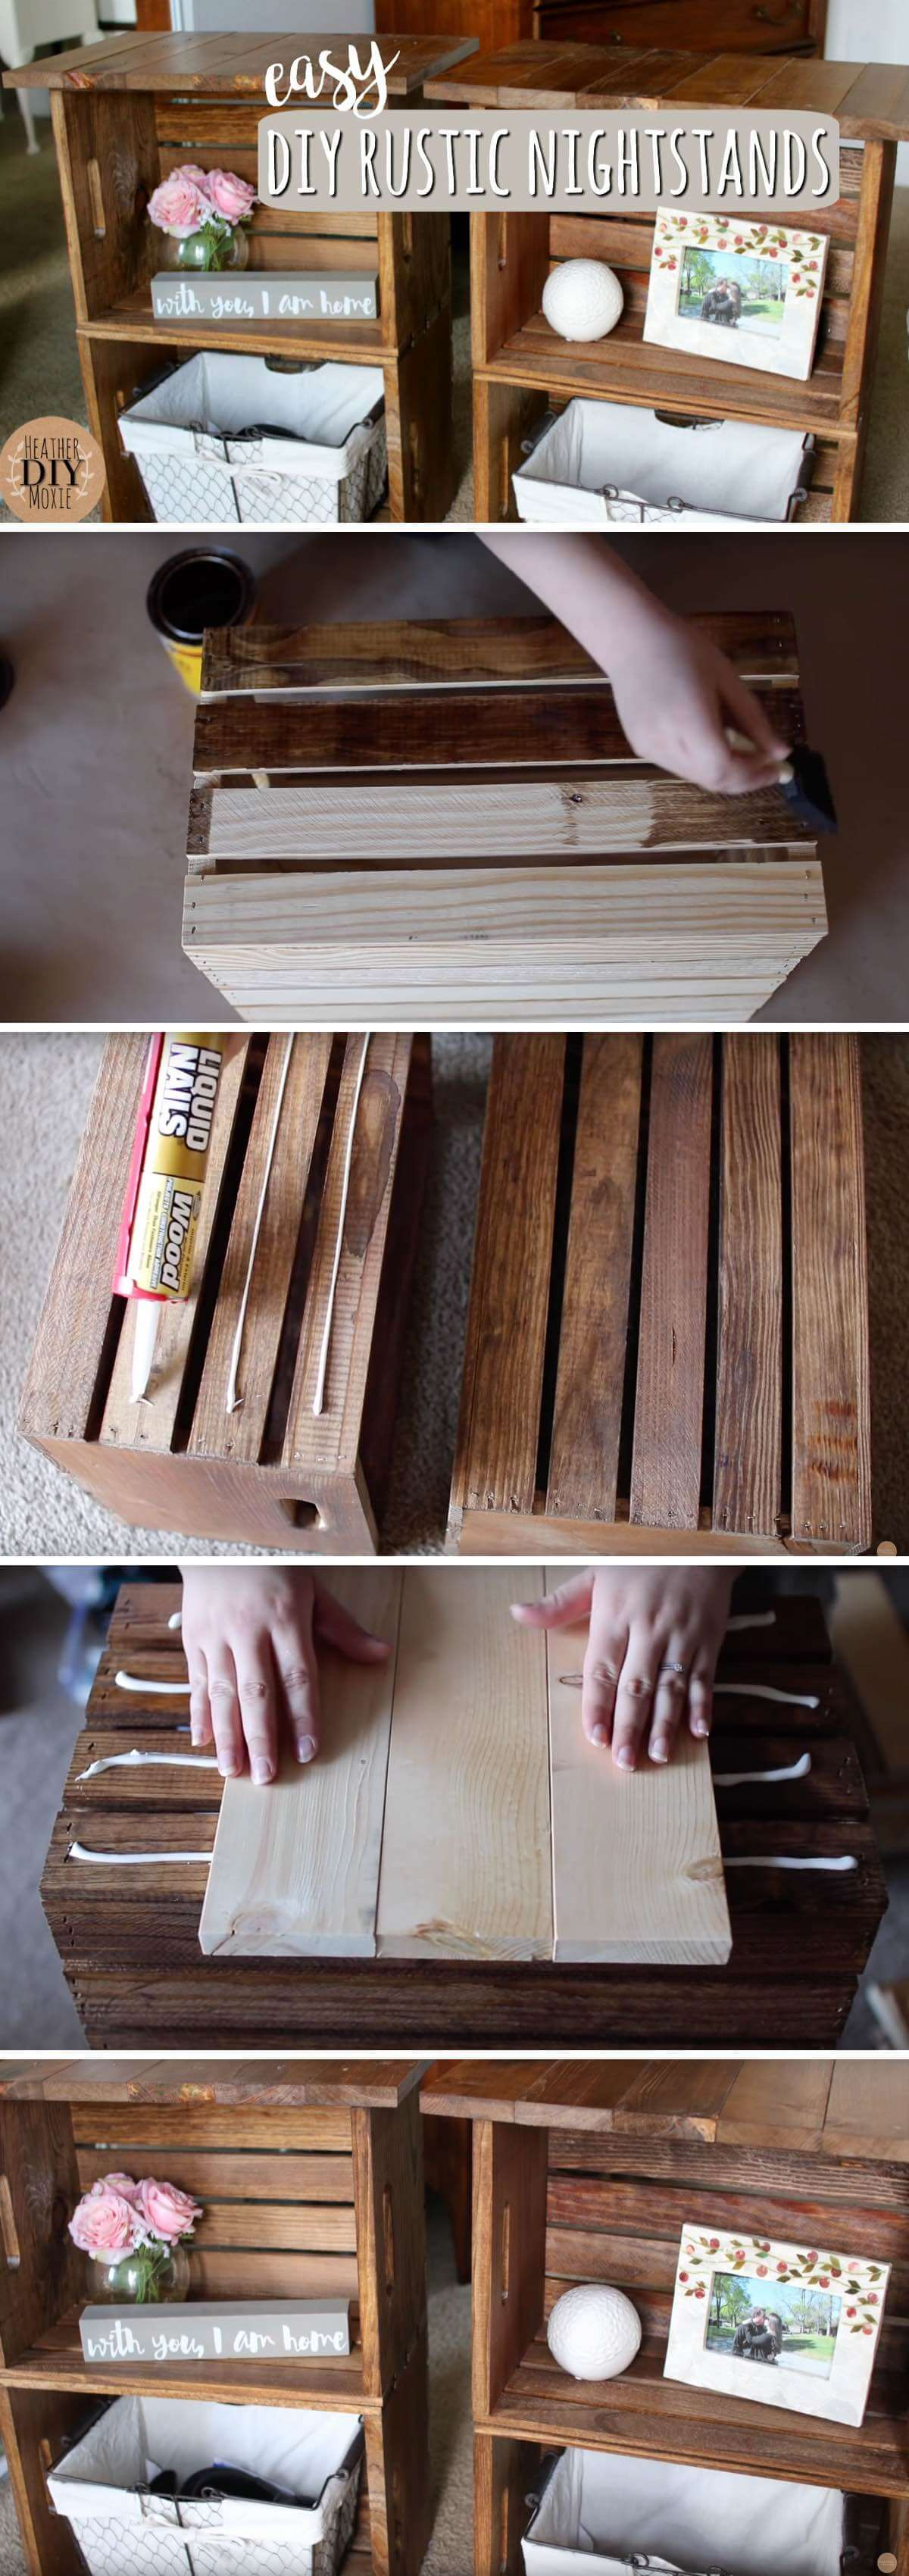 How to build a DIY Rustic Nightstands